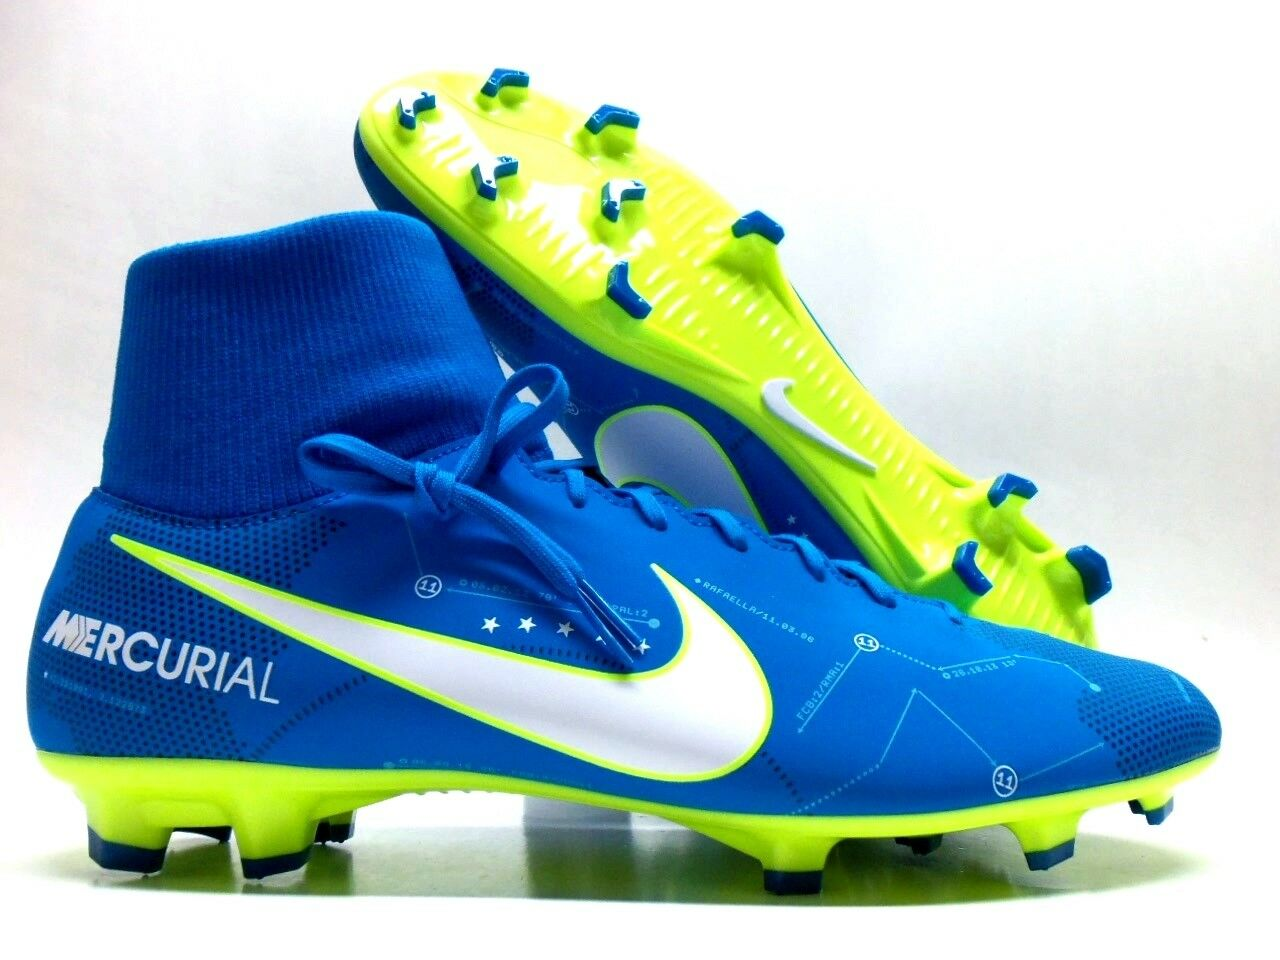 NIKE MERCURIAL VICTORY VI DF NJR FG NEYMAR BLUE ORBIT SIZE MEN'S 9 [921506-400]